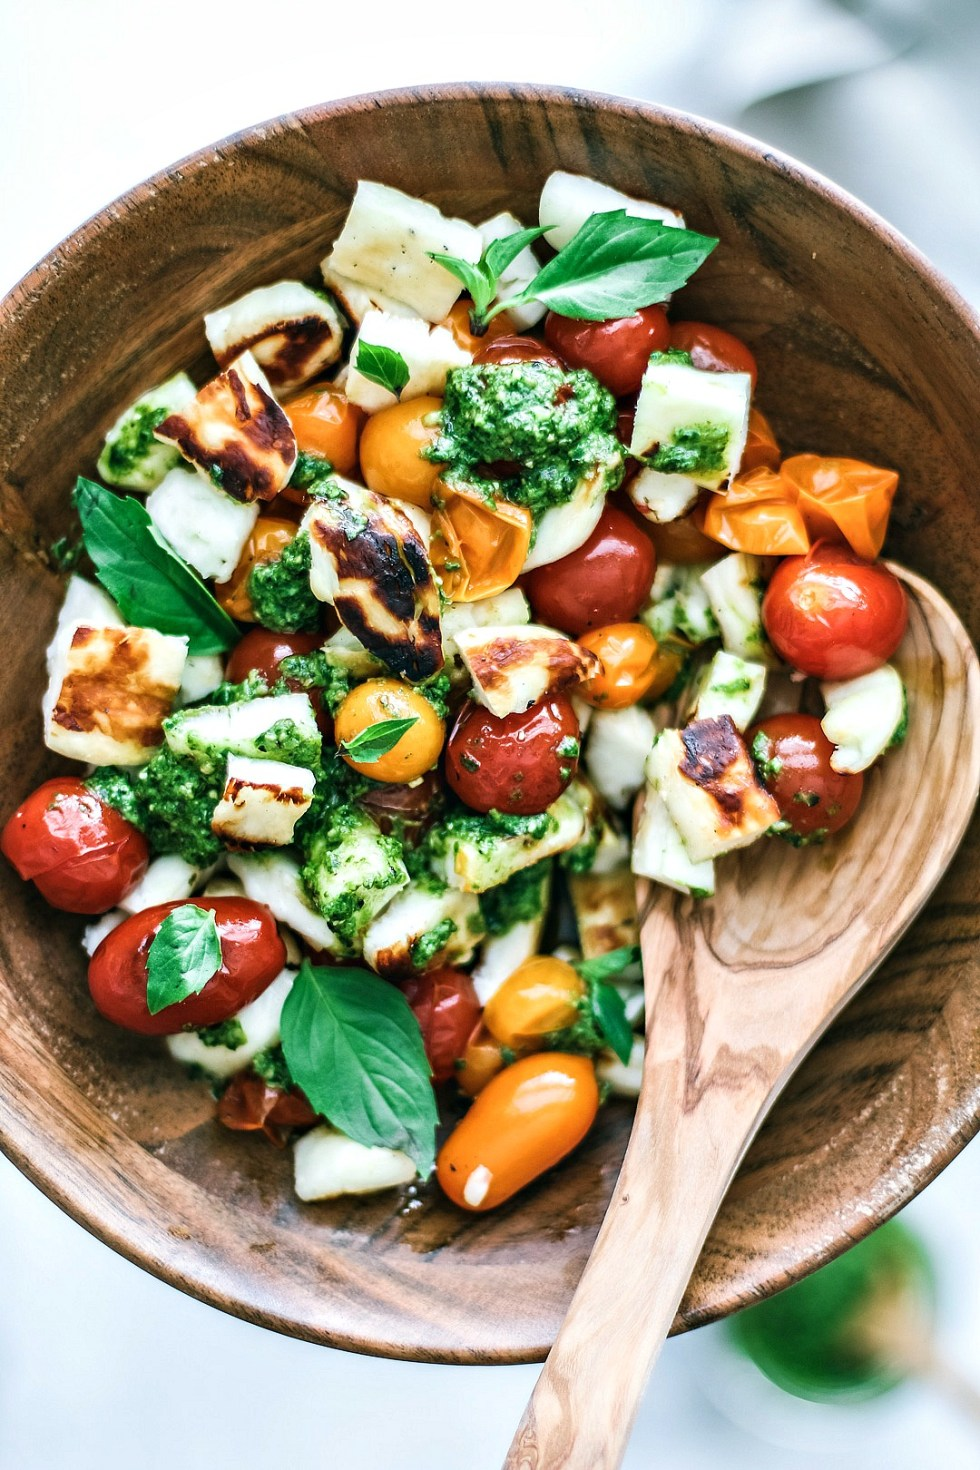 Grilled Halloumi and Burst Tomato Salad With Pesto in a bowl